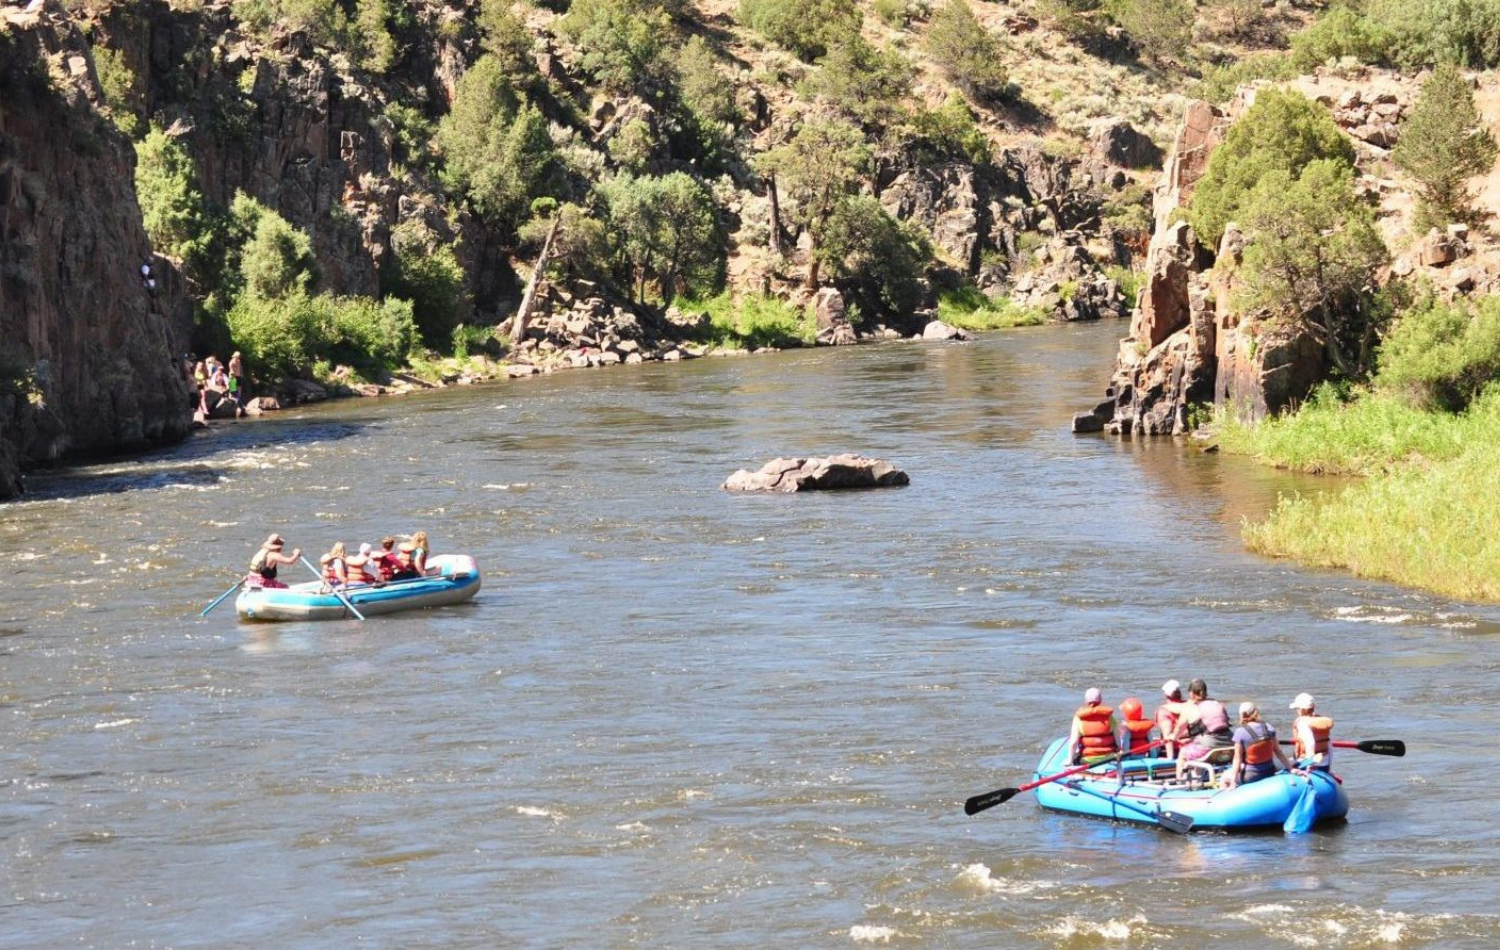 Whitewater Rafting & Tubing in Kremmling, CO - Grand County